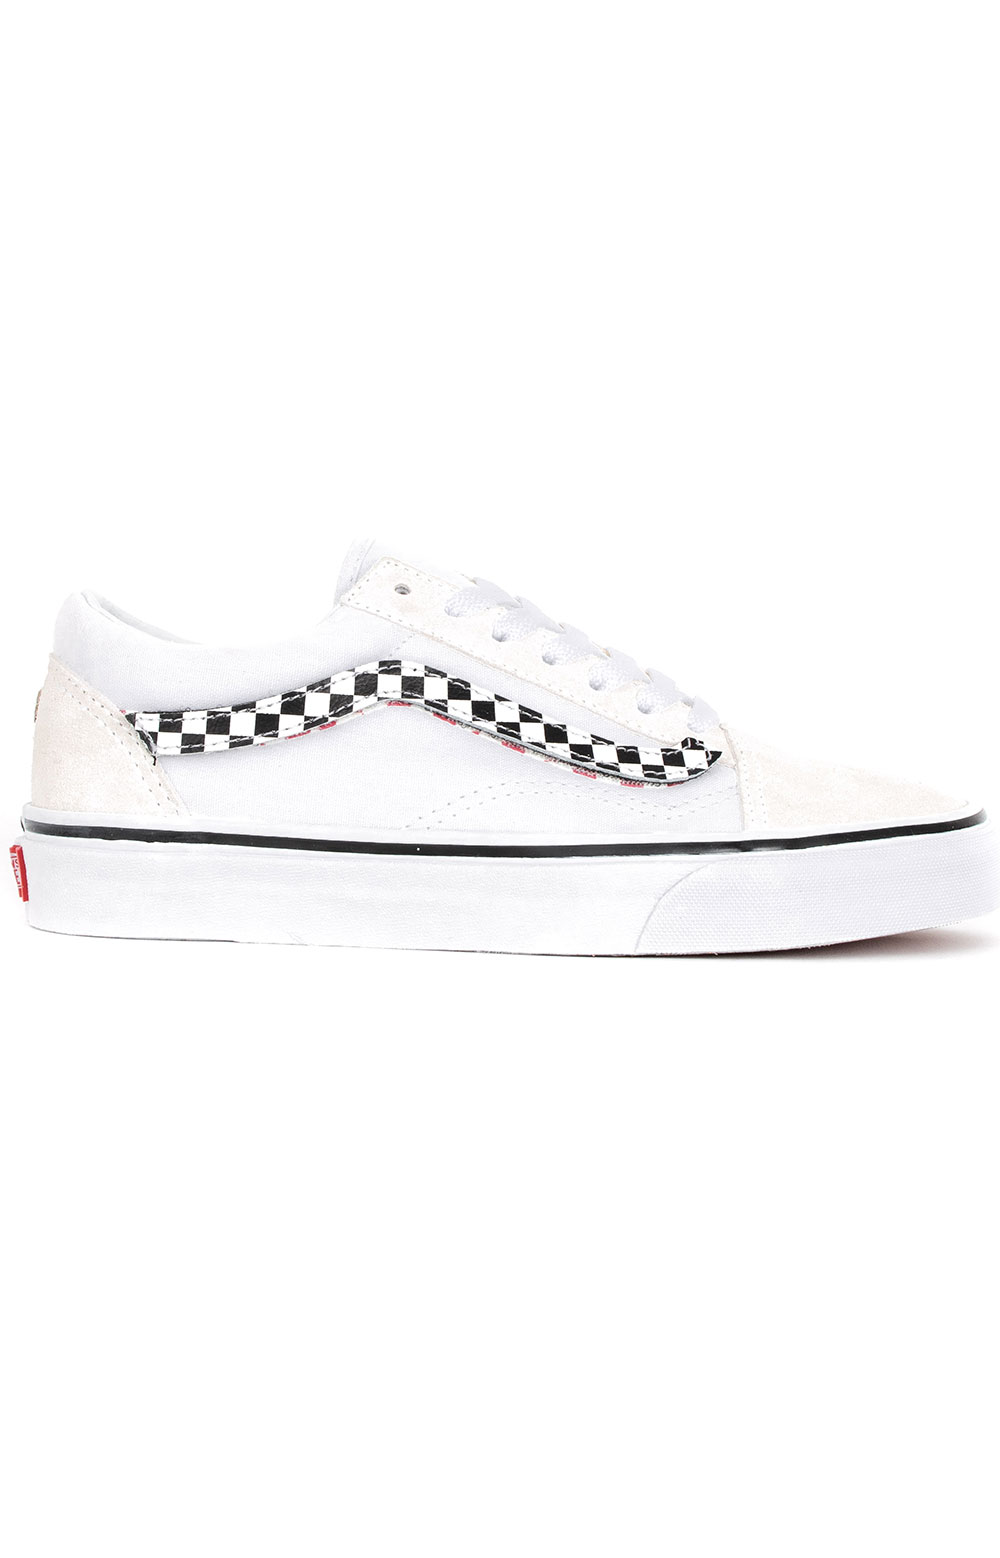 (8G1UPC) Sidestripe V Old Skool Shoe - True White